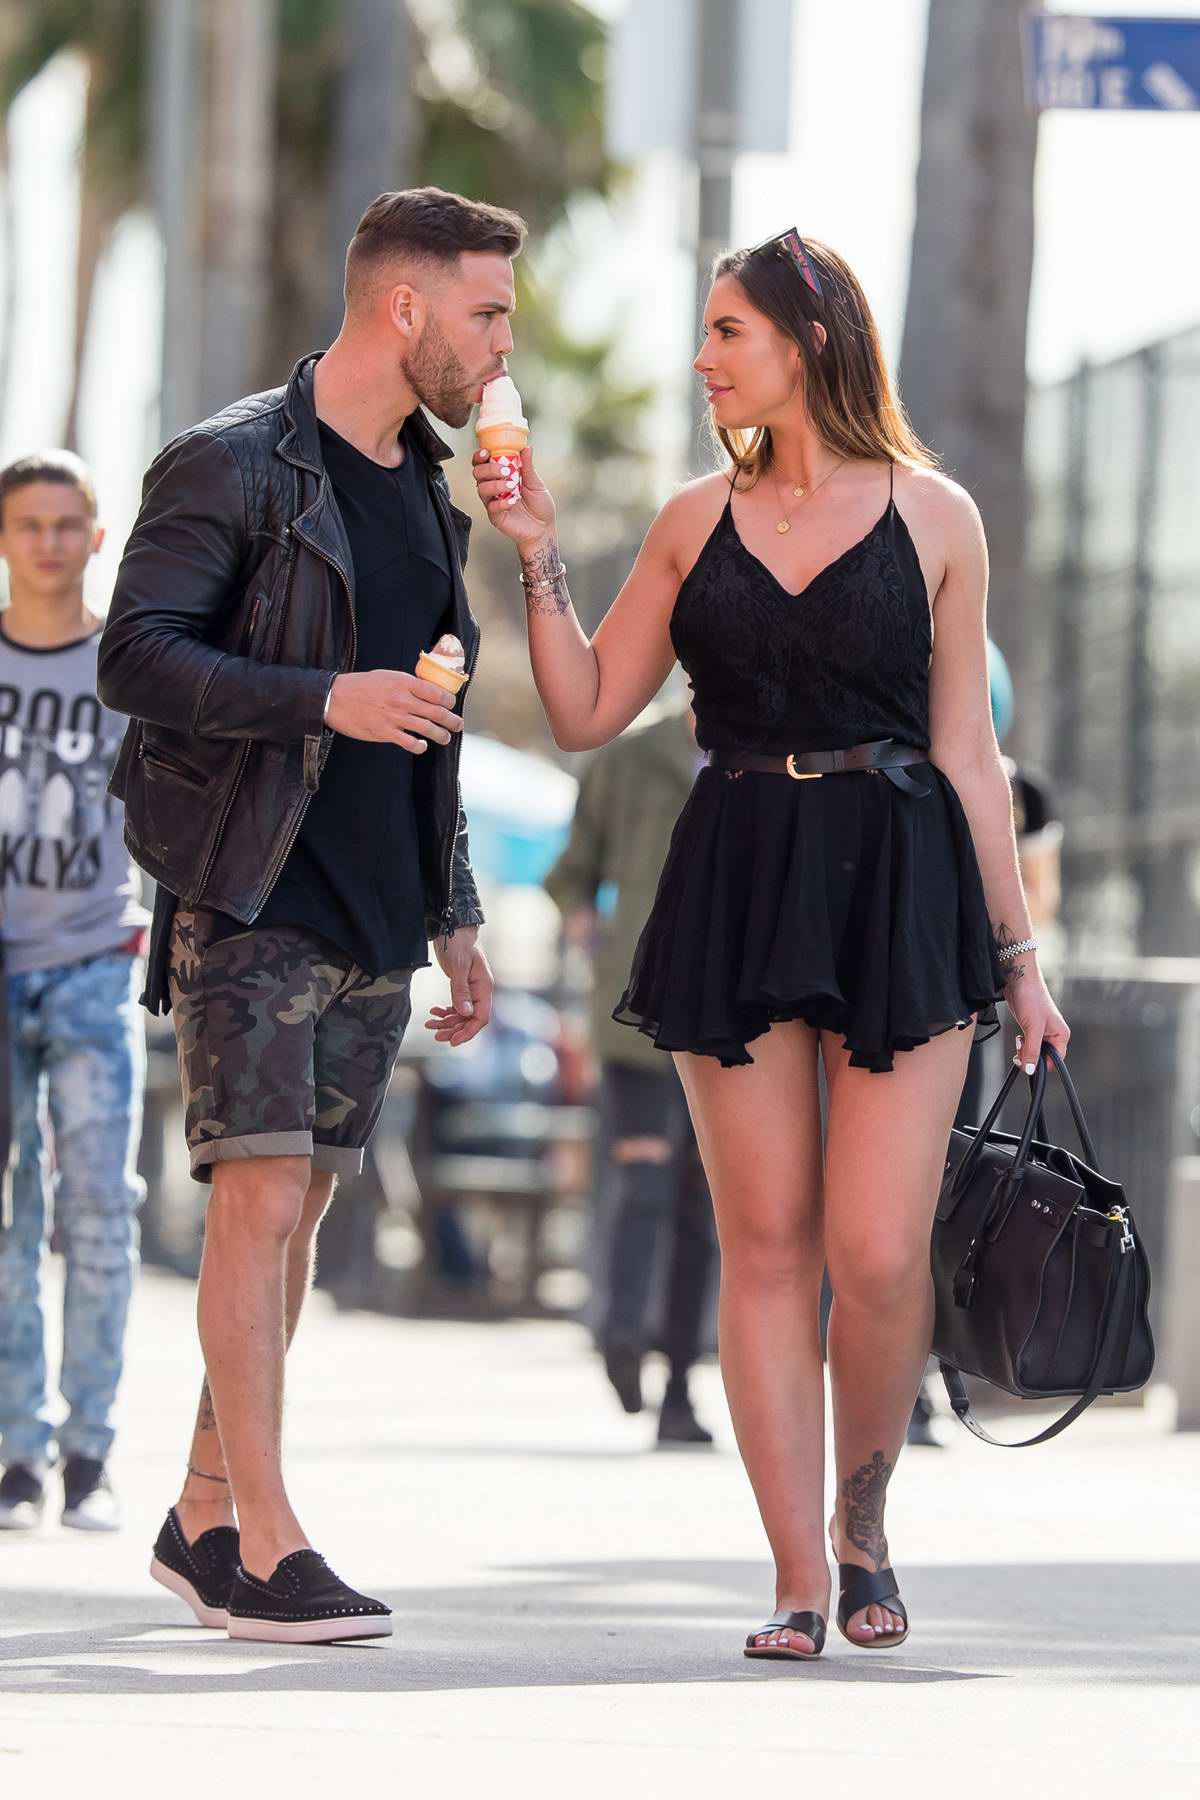 Jessica Shears and Dom Lever enjoys a stroll at Venice beach, Los Angeles